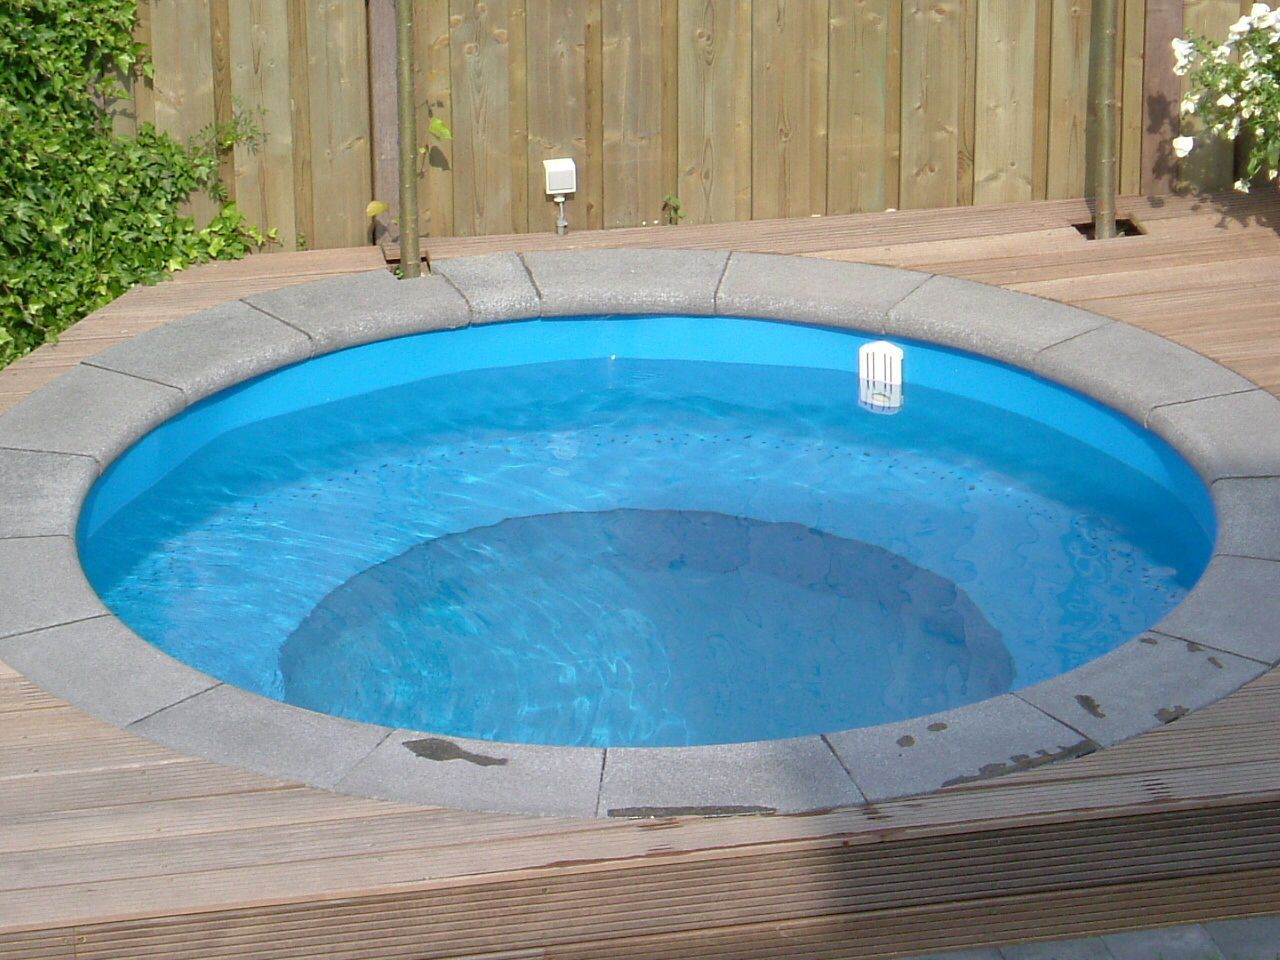 Beste Inbouw Zwembad Inbouw Jacuzzi Hottubs And Jacuzzis In Almost Any Shape